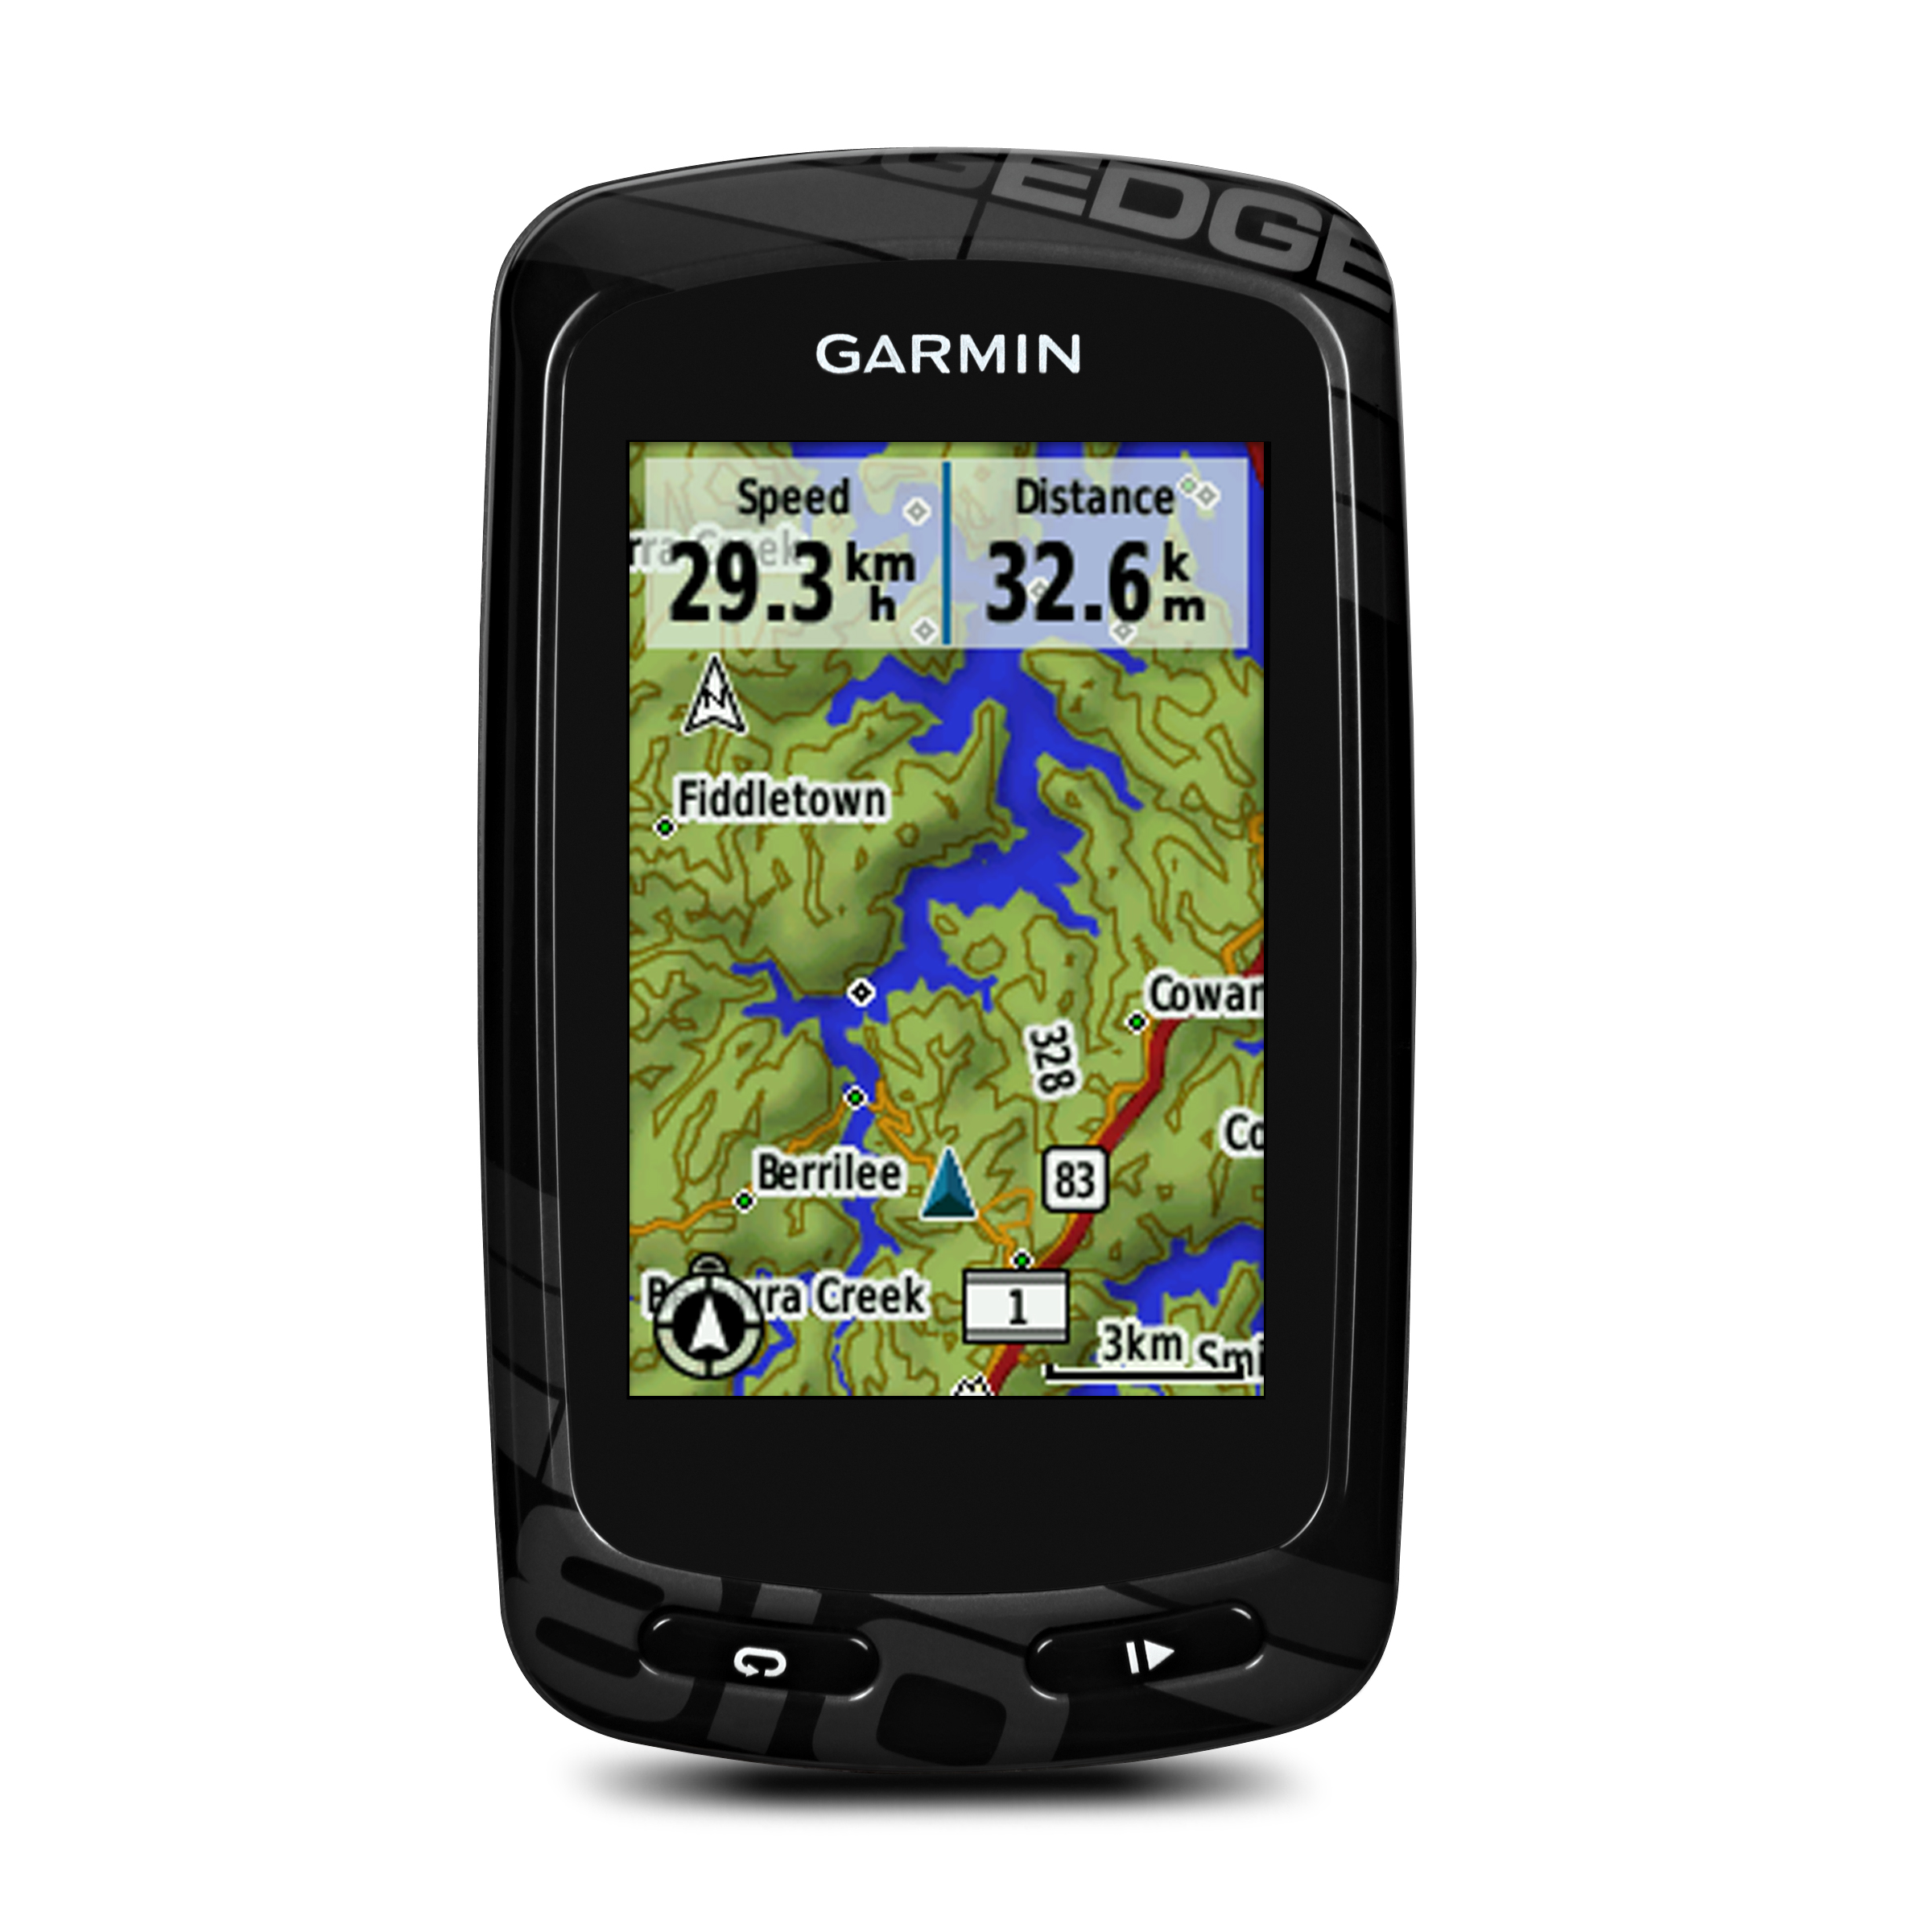 New Garmin Edge 810 Bike Computer Available For Delivery ...